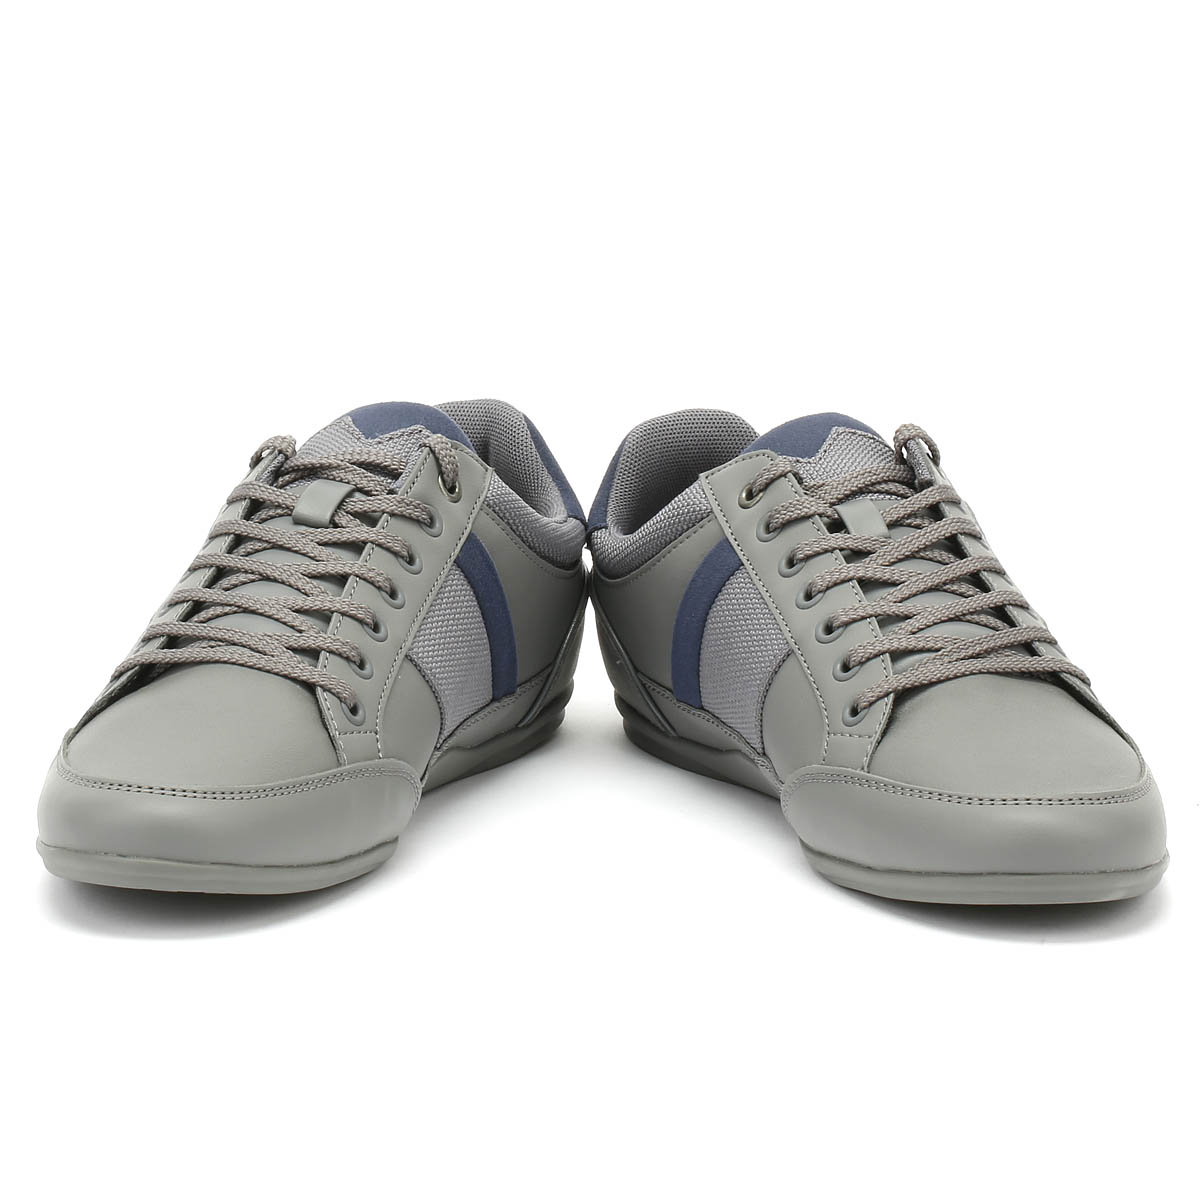 14e7f25ebc67 Lacoste Mens Trainers Chaymon 318 1 Dark Grey   Navy Sport Casual Shoes